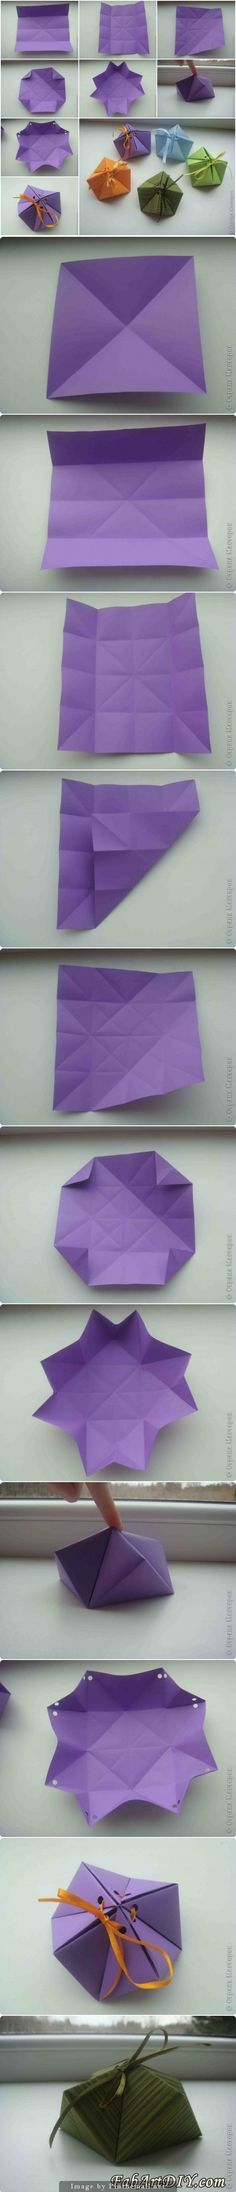 http://www.fabartdiy.com/how-to-diy-paper-origami-gift-box/ - created via http://pinthemall.net